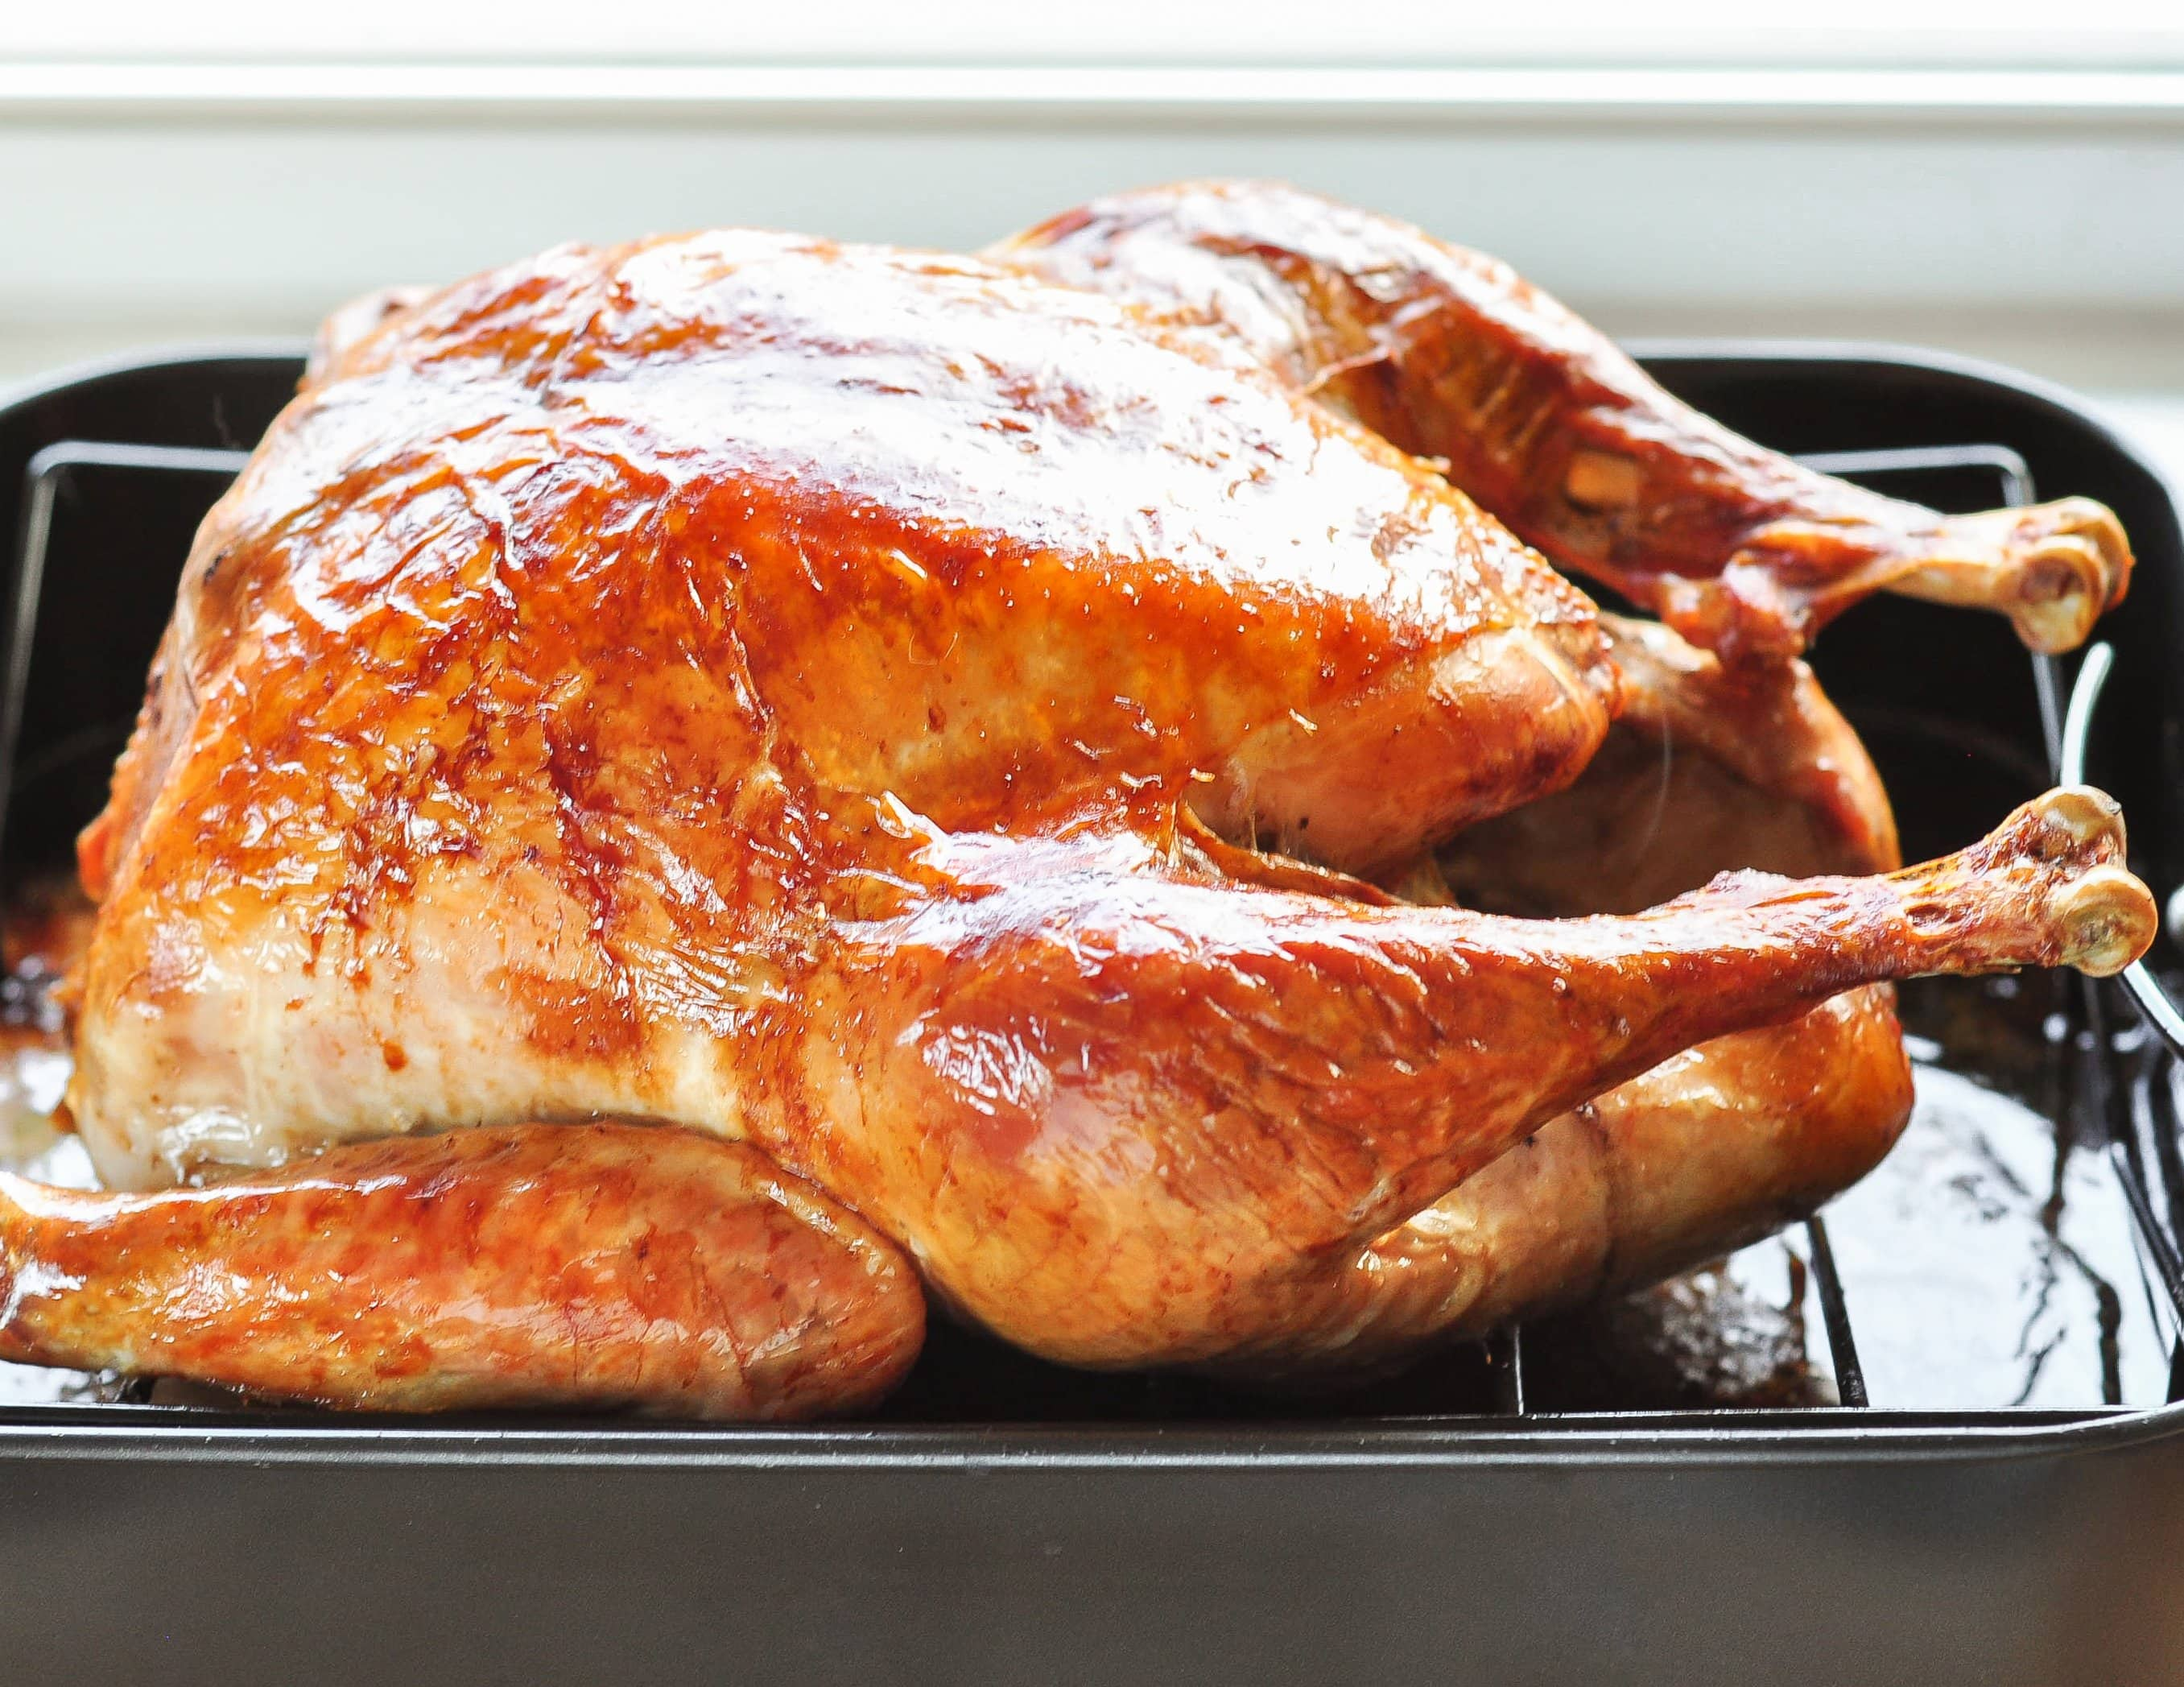 How To Cook a Turkey: The Simplest, Easiest Method | Kitchn